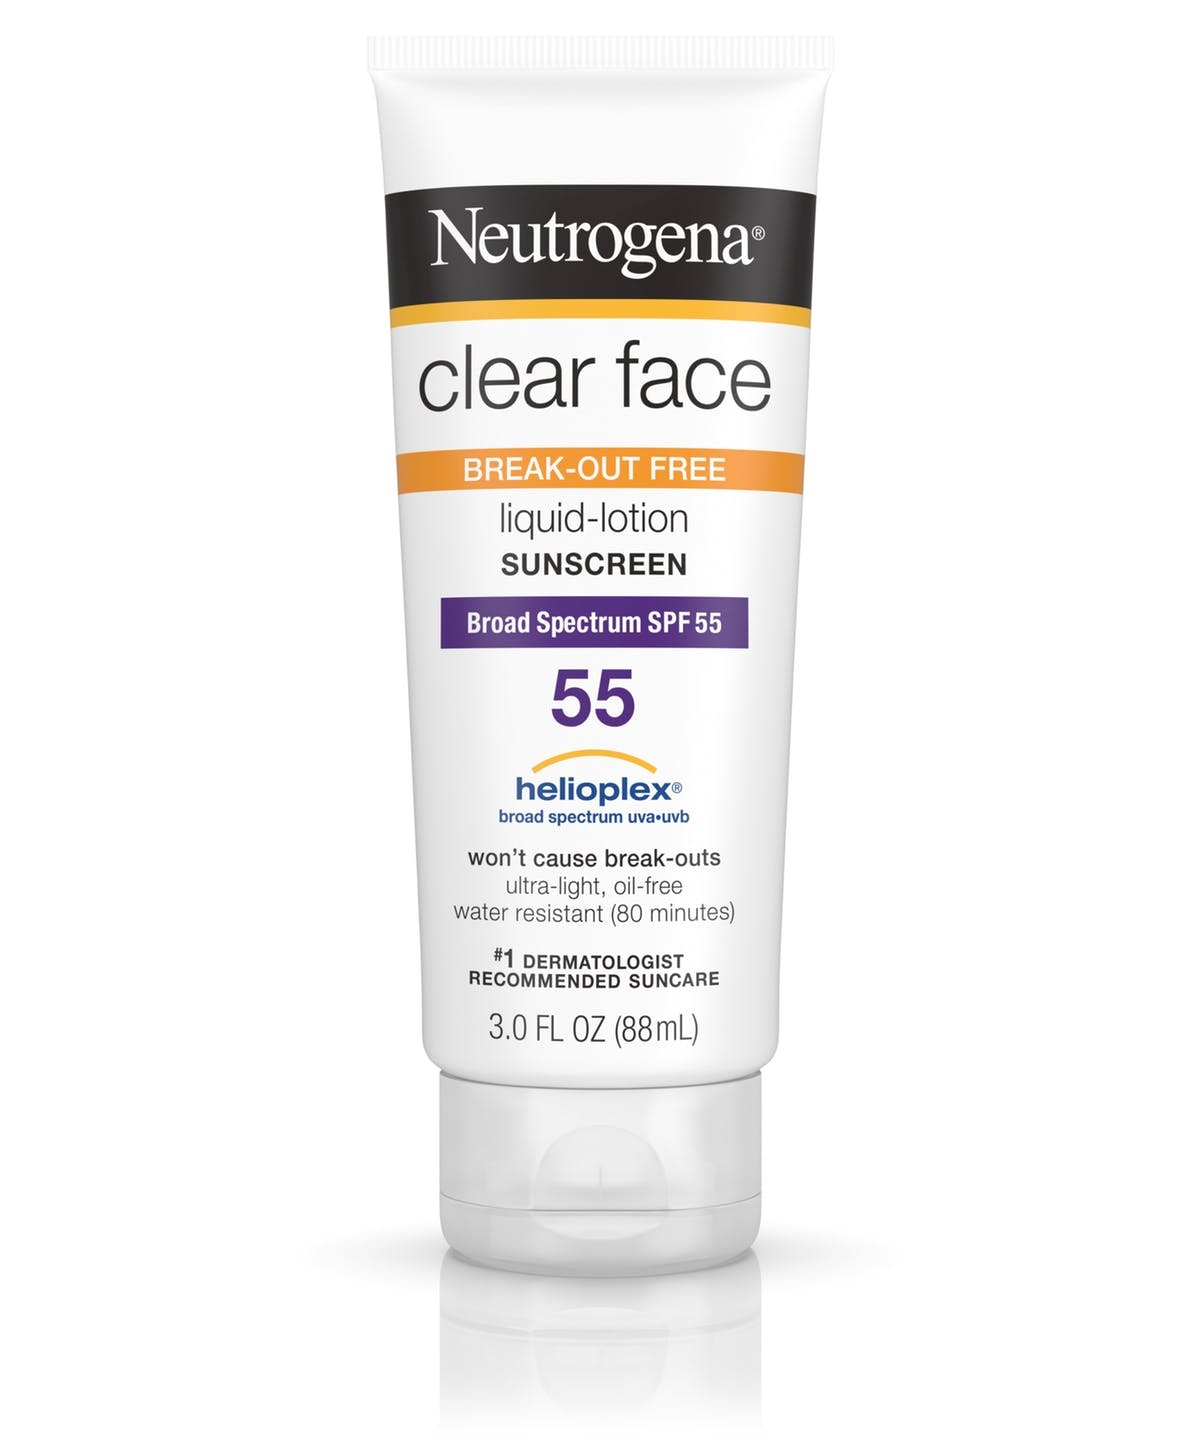 Neutrogena® Clear Face Break-Out Free Liquid Lotion Sunscreen Broad Spectrum SPF 55